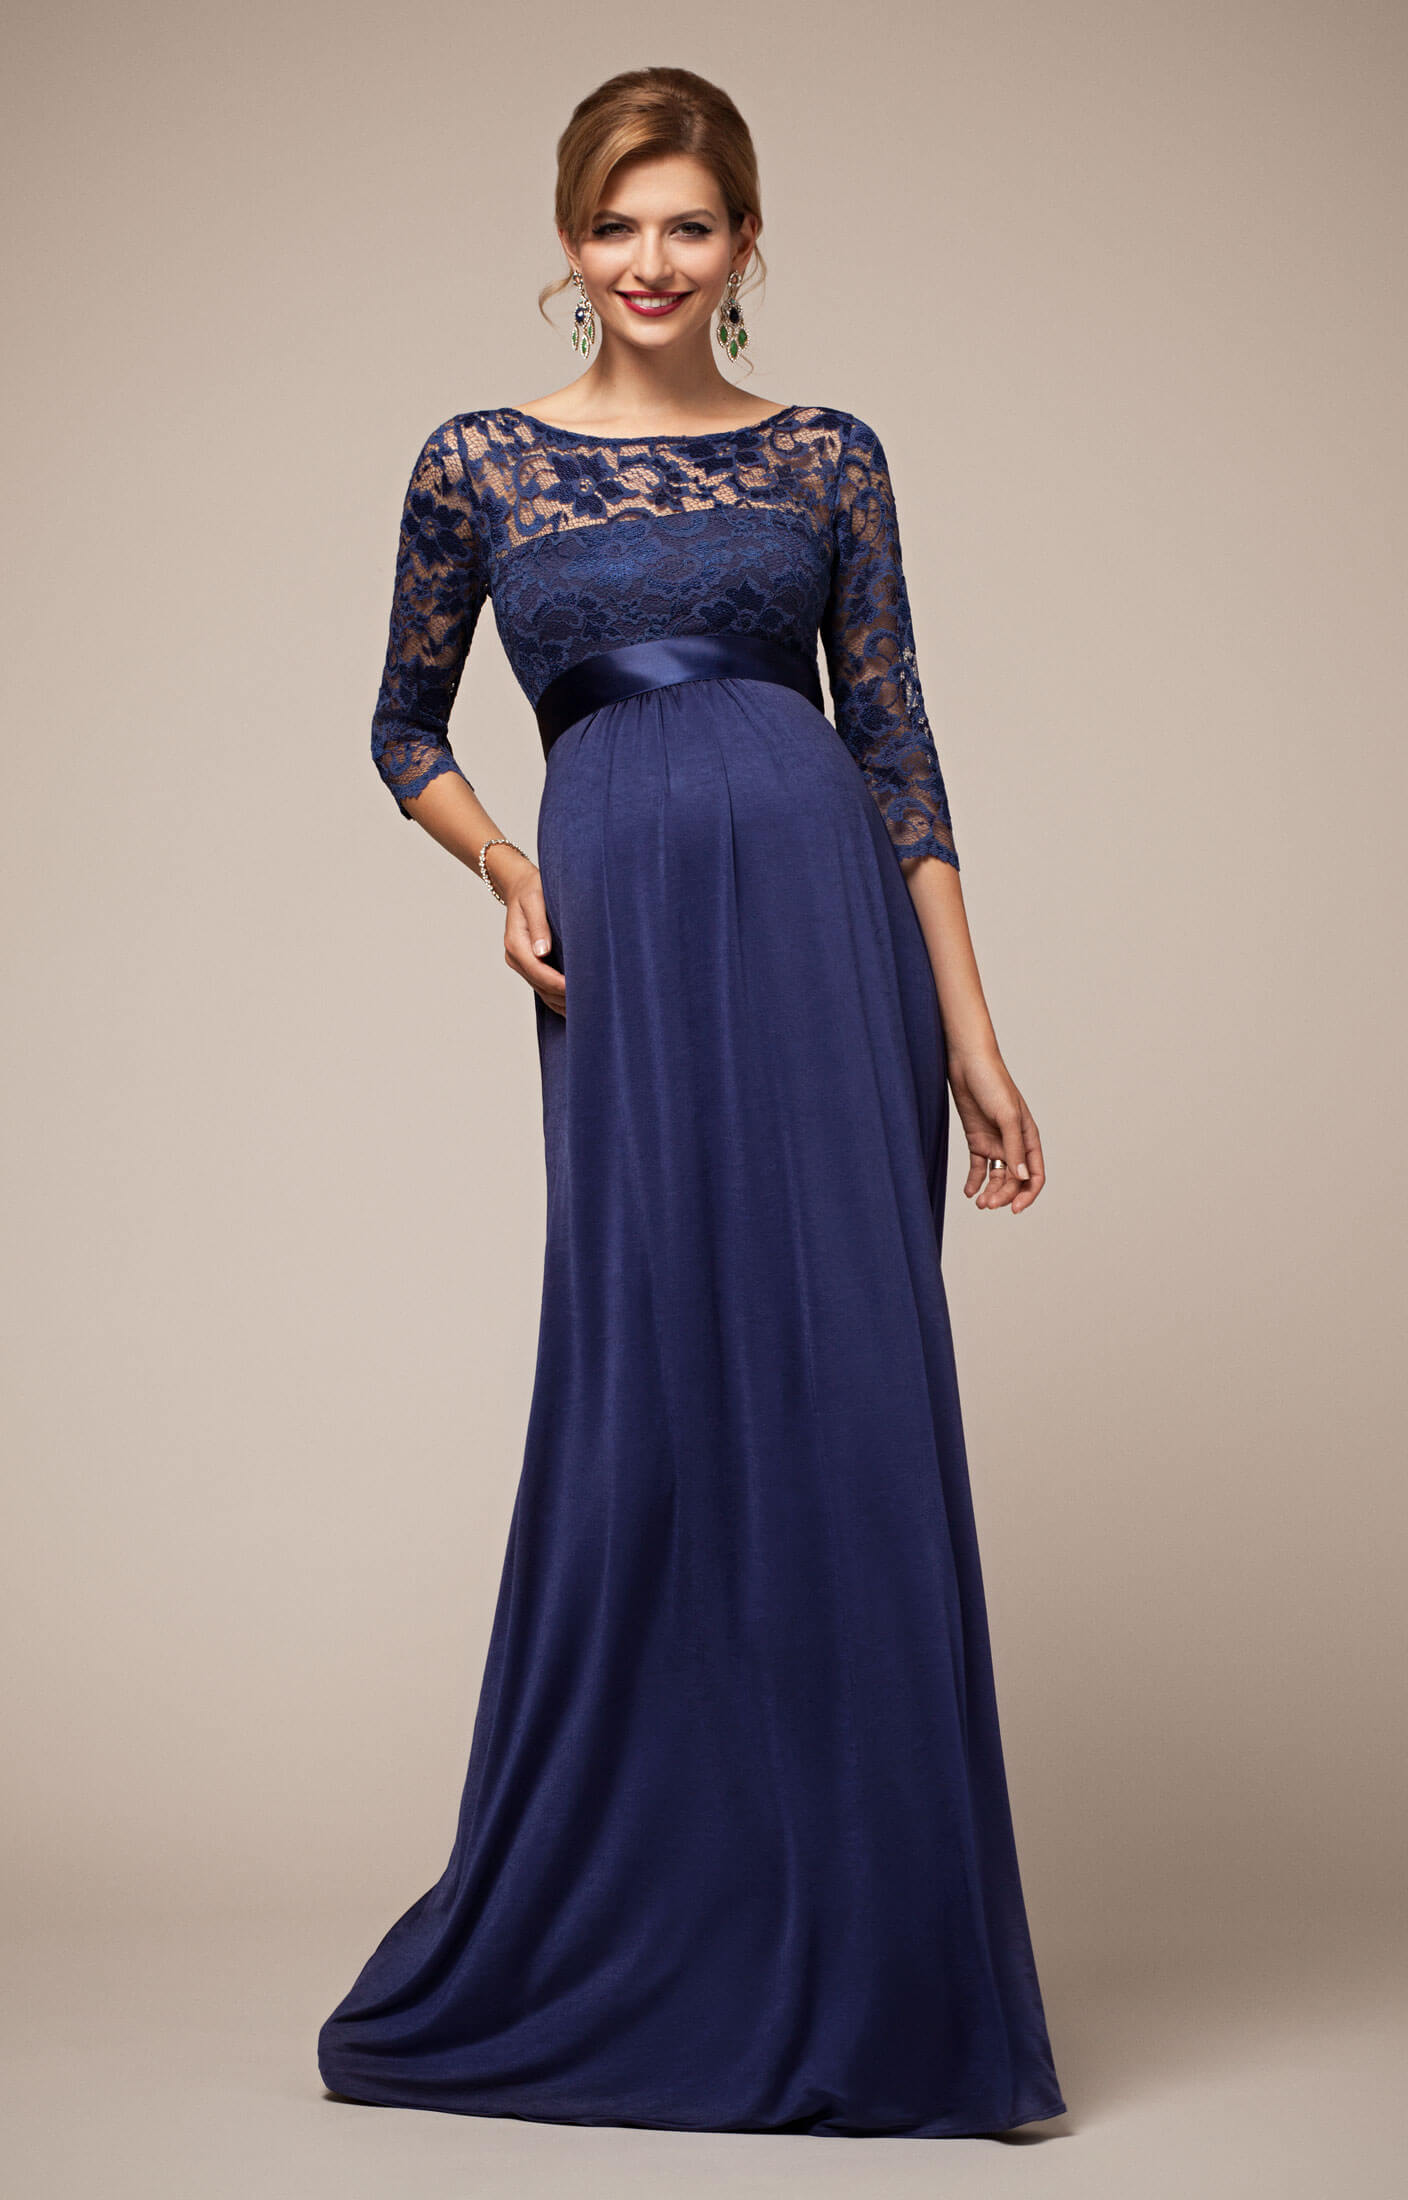 Lucia maternity gown windsor blue maternity wedding for How to dress for an evening wedding